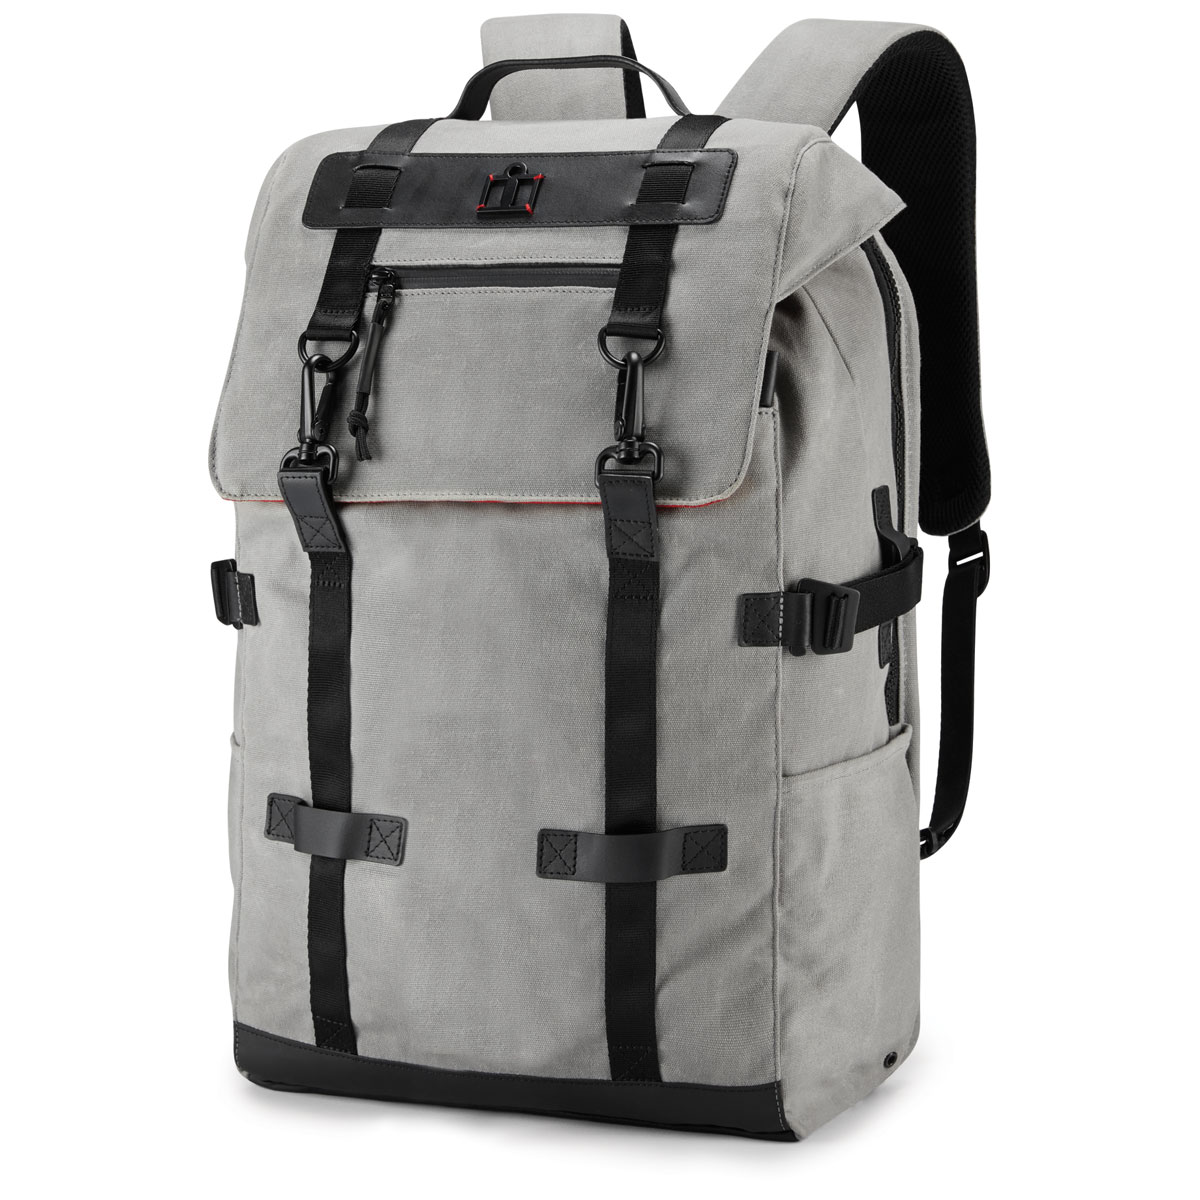 ICON One Thousand Advokat 2 Wax-Canvas Backpack